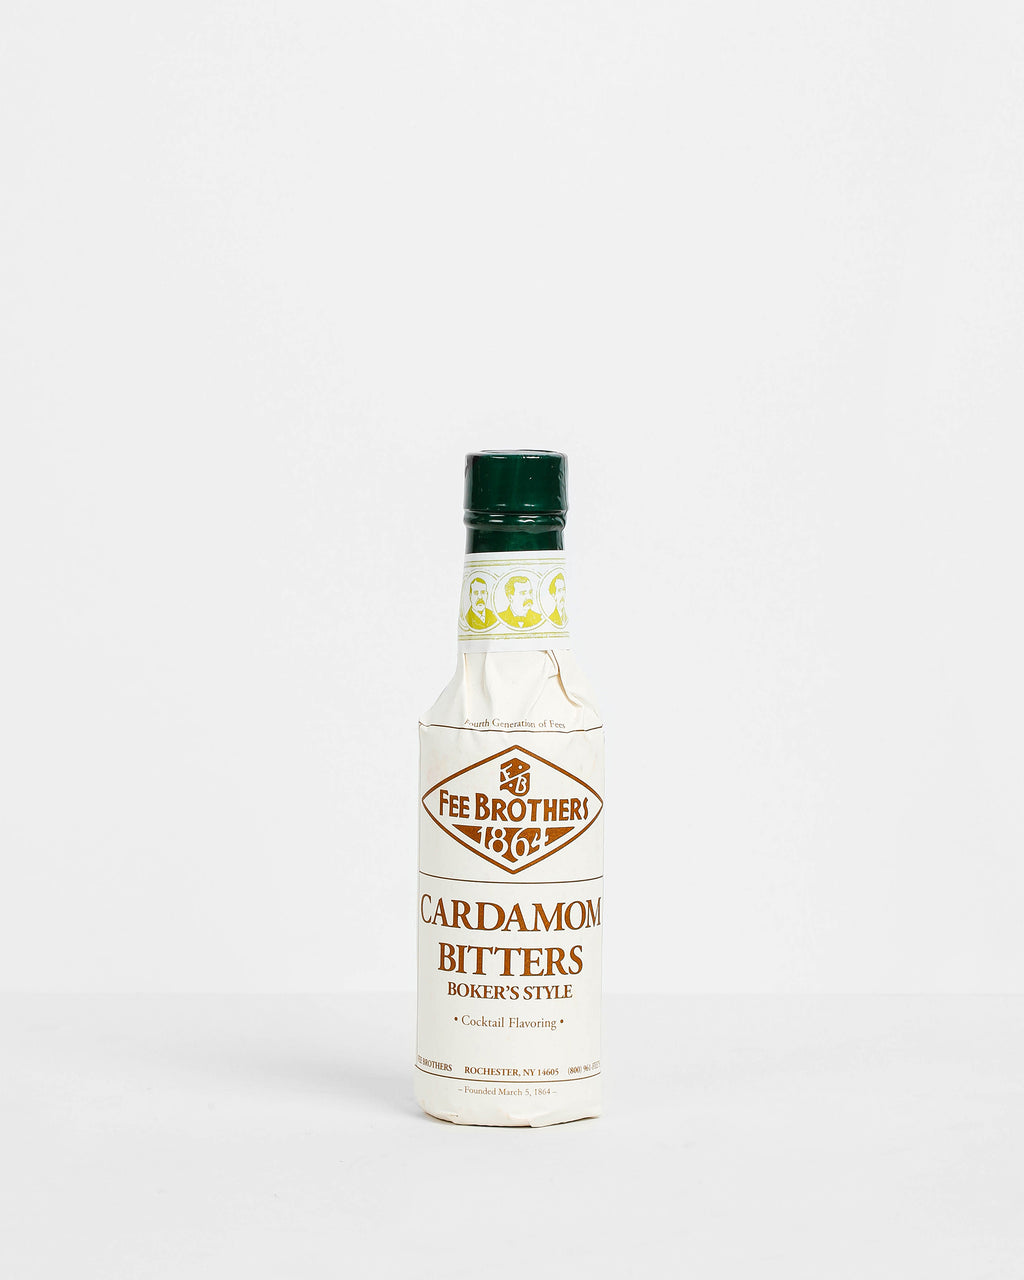 Fee Brother's - Cardamom Bitters Boker's Style